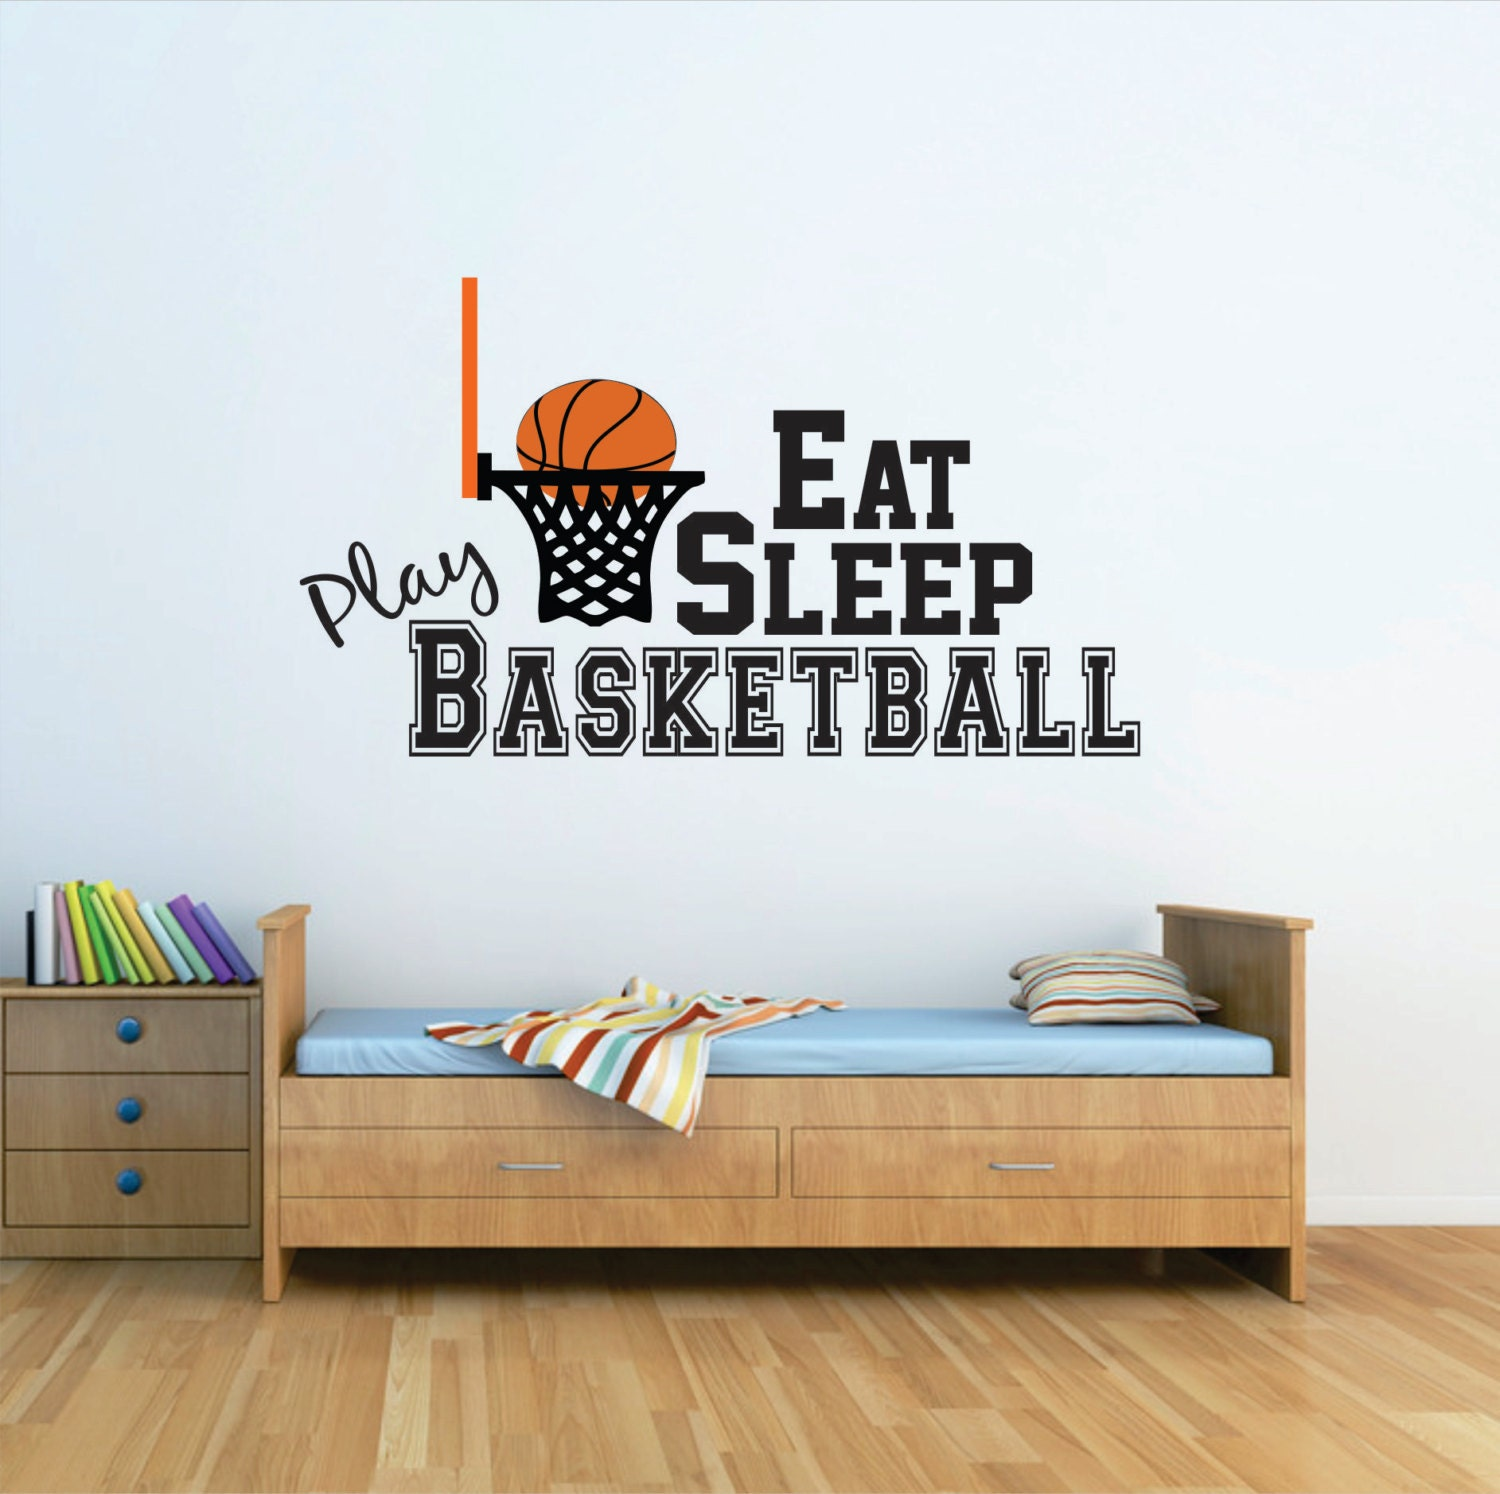 Basketball wall decal basketball nursery decal basketball for Basketball wall decals